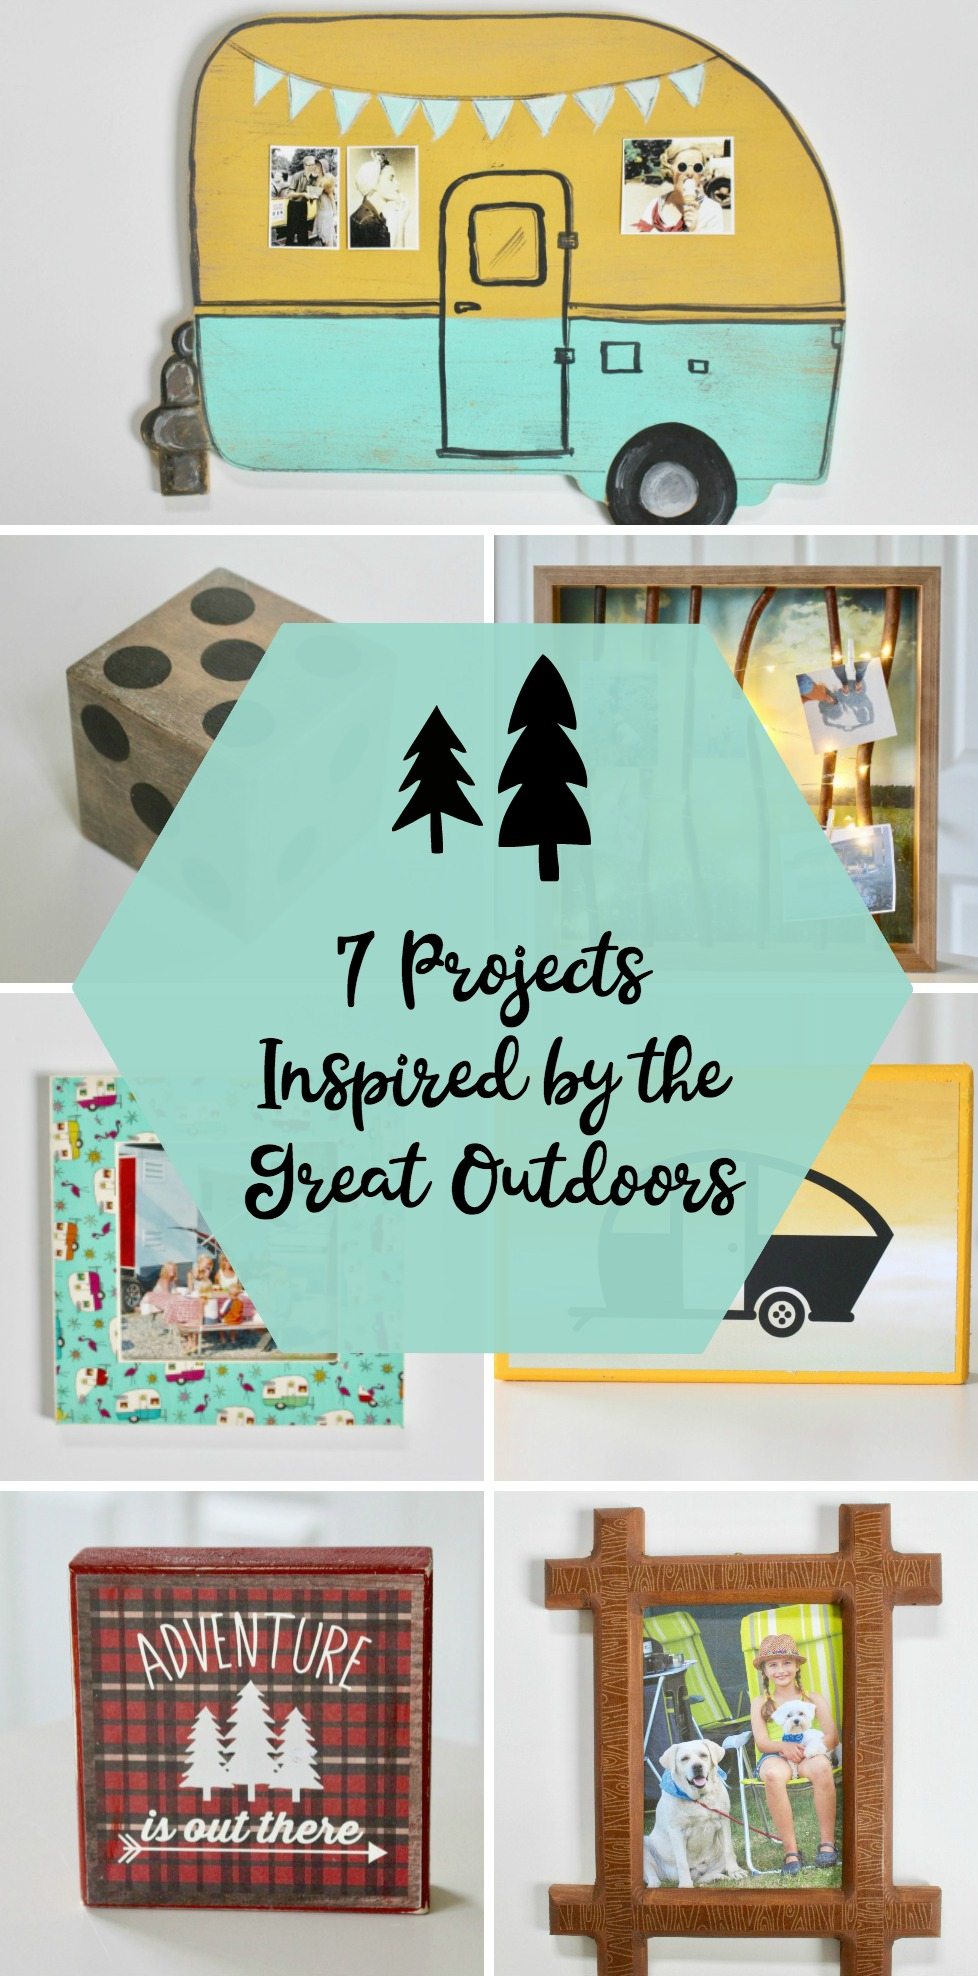 Decor Projects inspired by the Great Outdoors